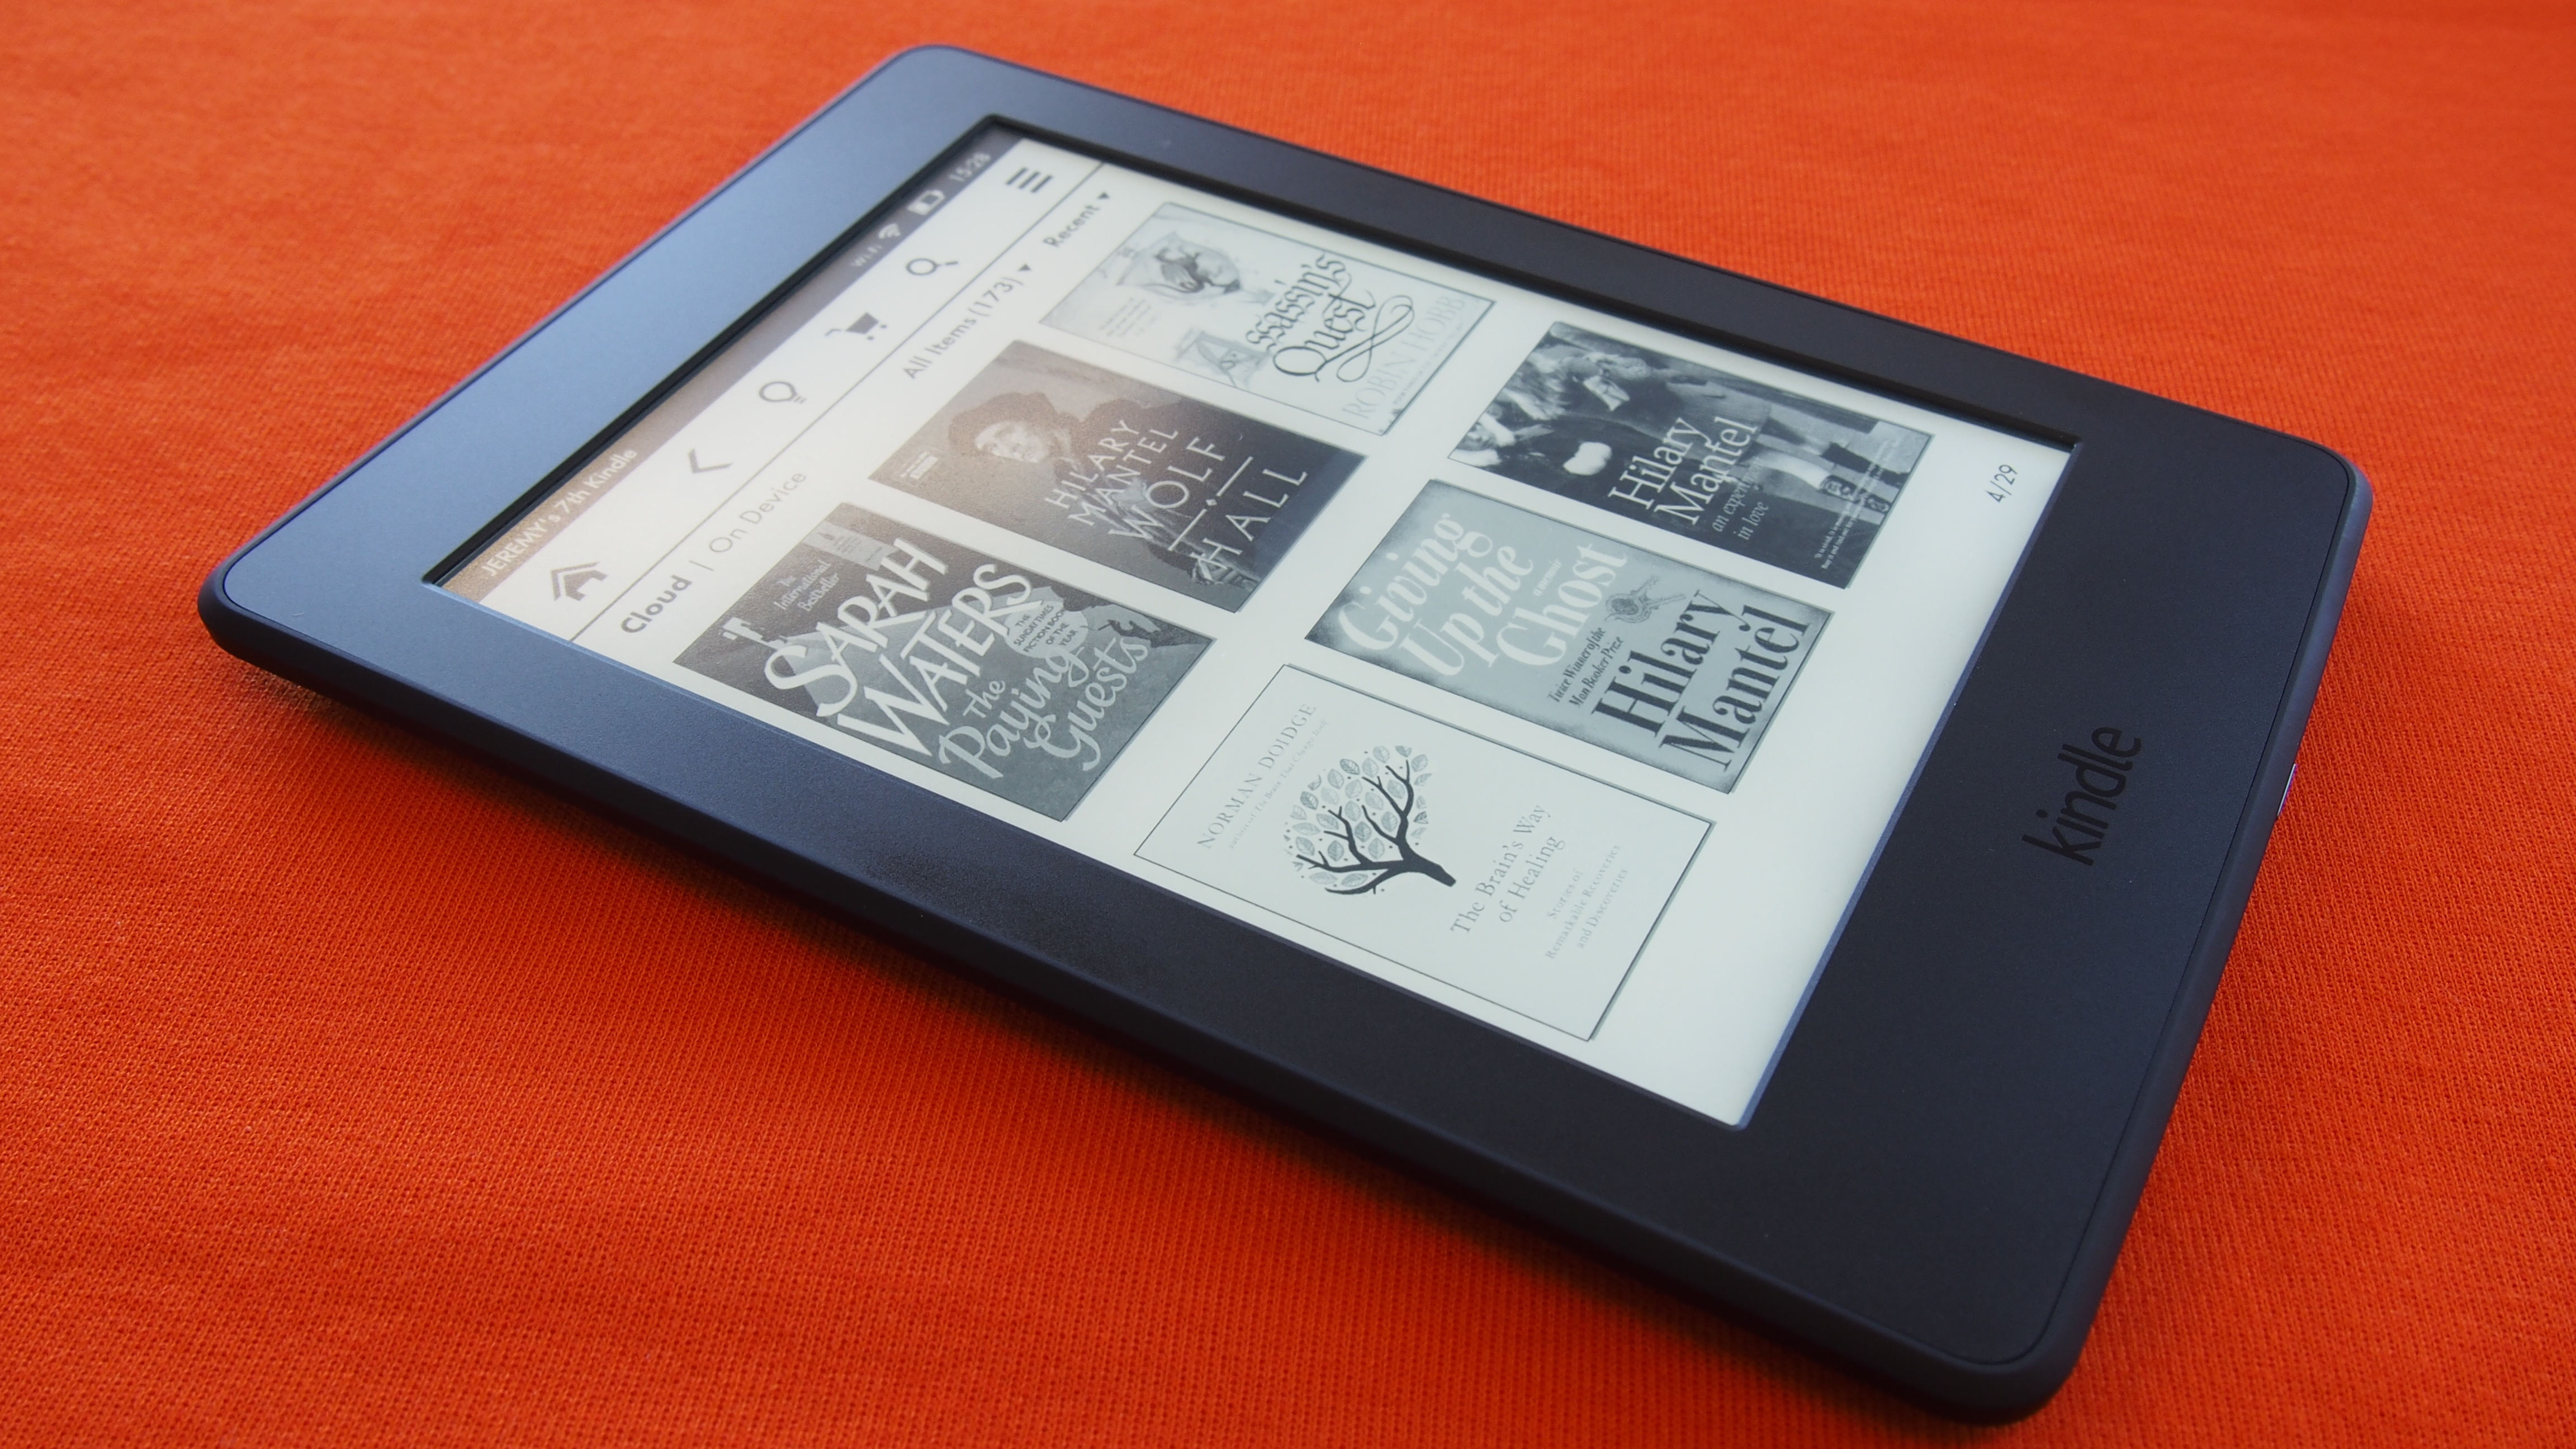 Amazon kindle paperwhite review great resolution but the features aren t extensive expert reviews